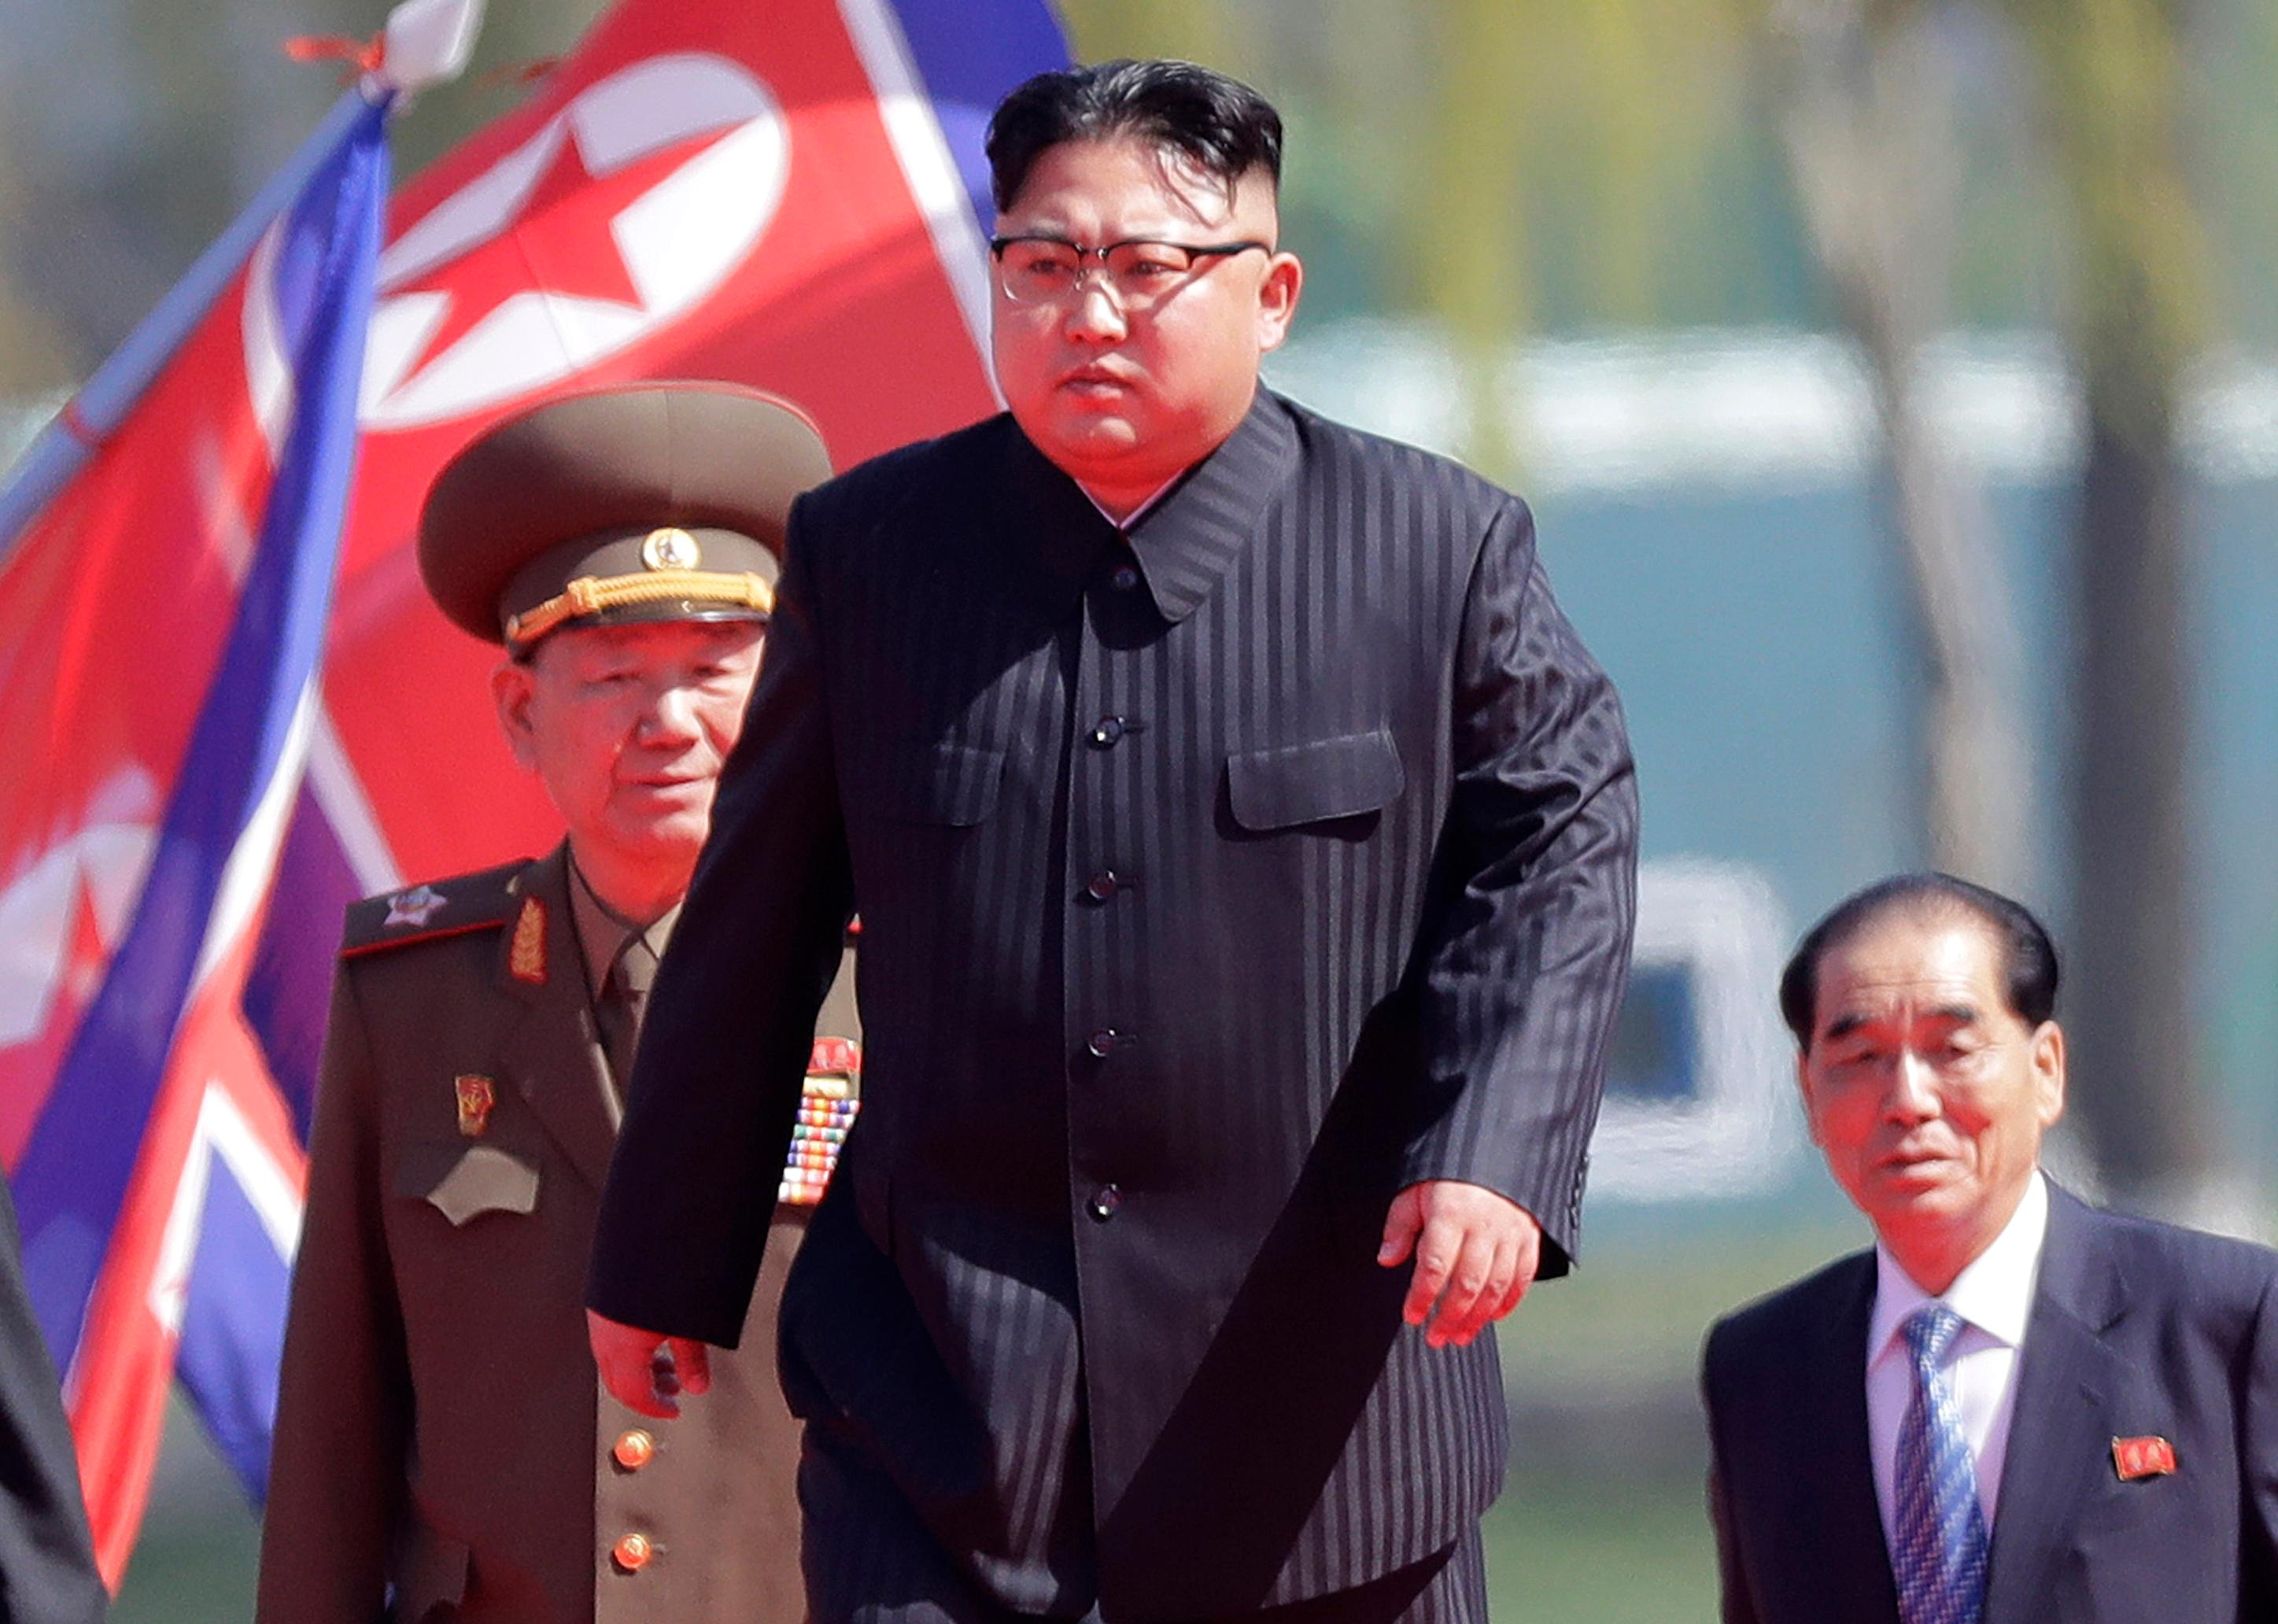 FILE - In this April 13, 2017 file photo, North Korean leader Kim Jong Un, center, arrives for the official opening of the Ryomyong residential area, in Pyongyang, North Korea. South Korea's military says North Korea is believed to have conducted its sixth nuclear test. South Korea's military said Sunday, Sept. 3, 2017,  that North Korea is believed to have conducted its sixth nuclear test after it detected a strong earthquake, hours after Pyongyang claimed that its leader has inspected a hydrogen bomb meant for a new intercontinental ballistic missile. (AP Photo/Wong Maye-E, File)